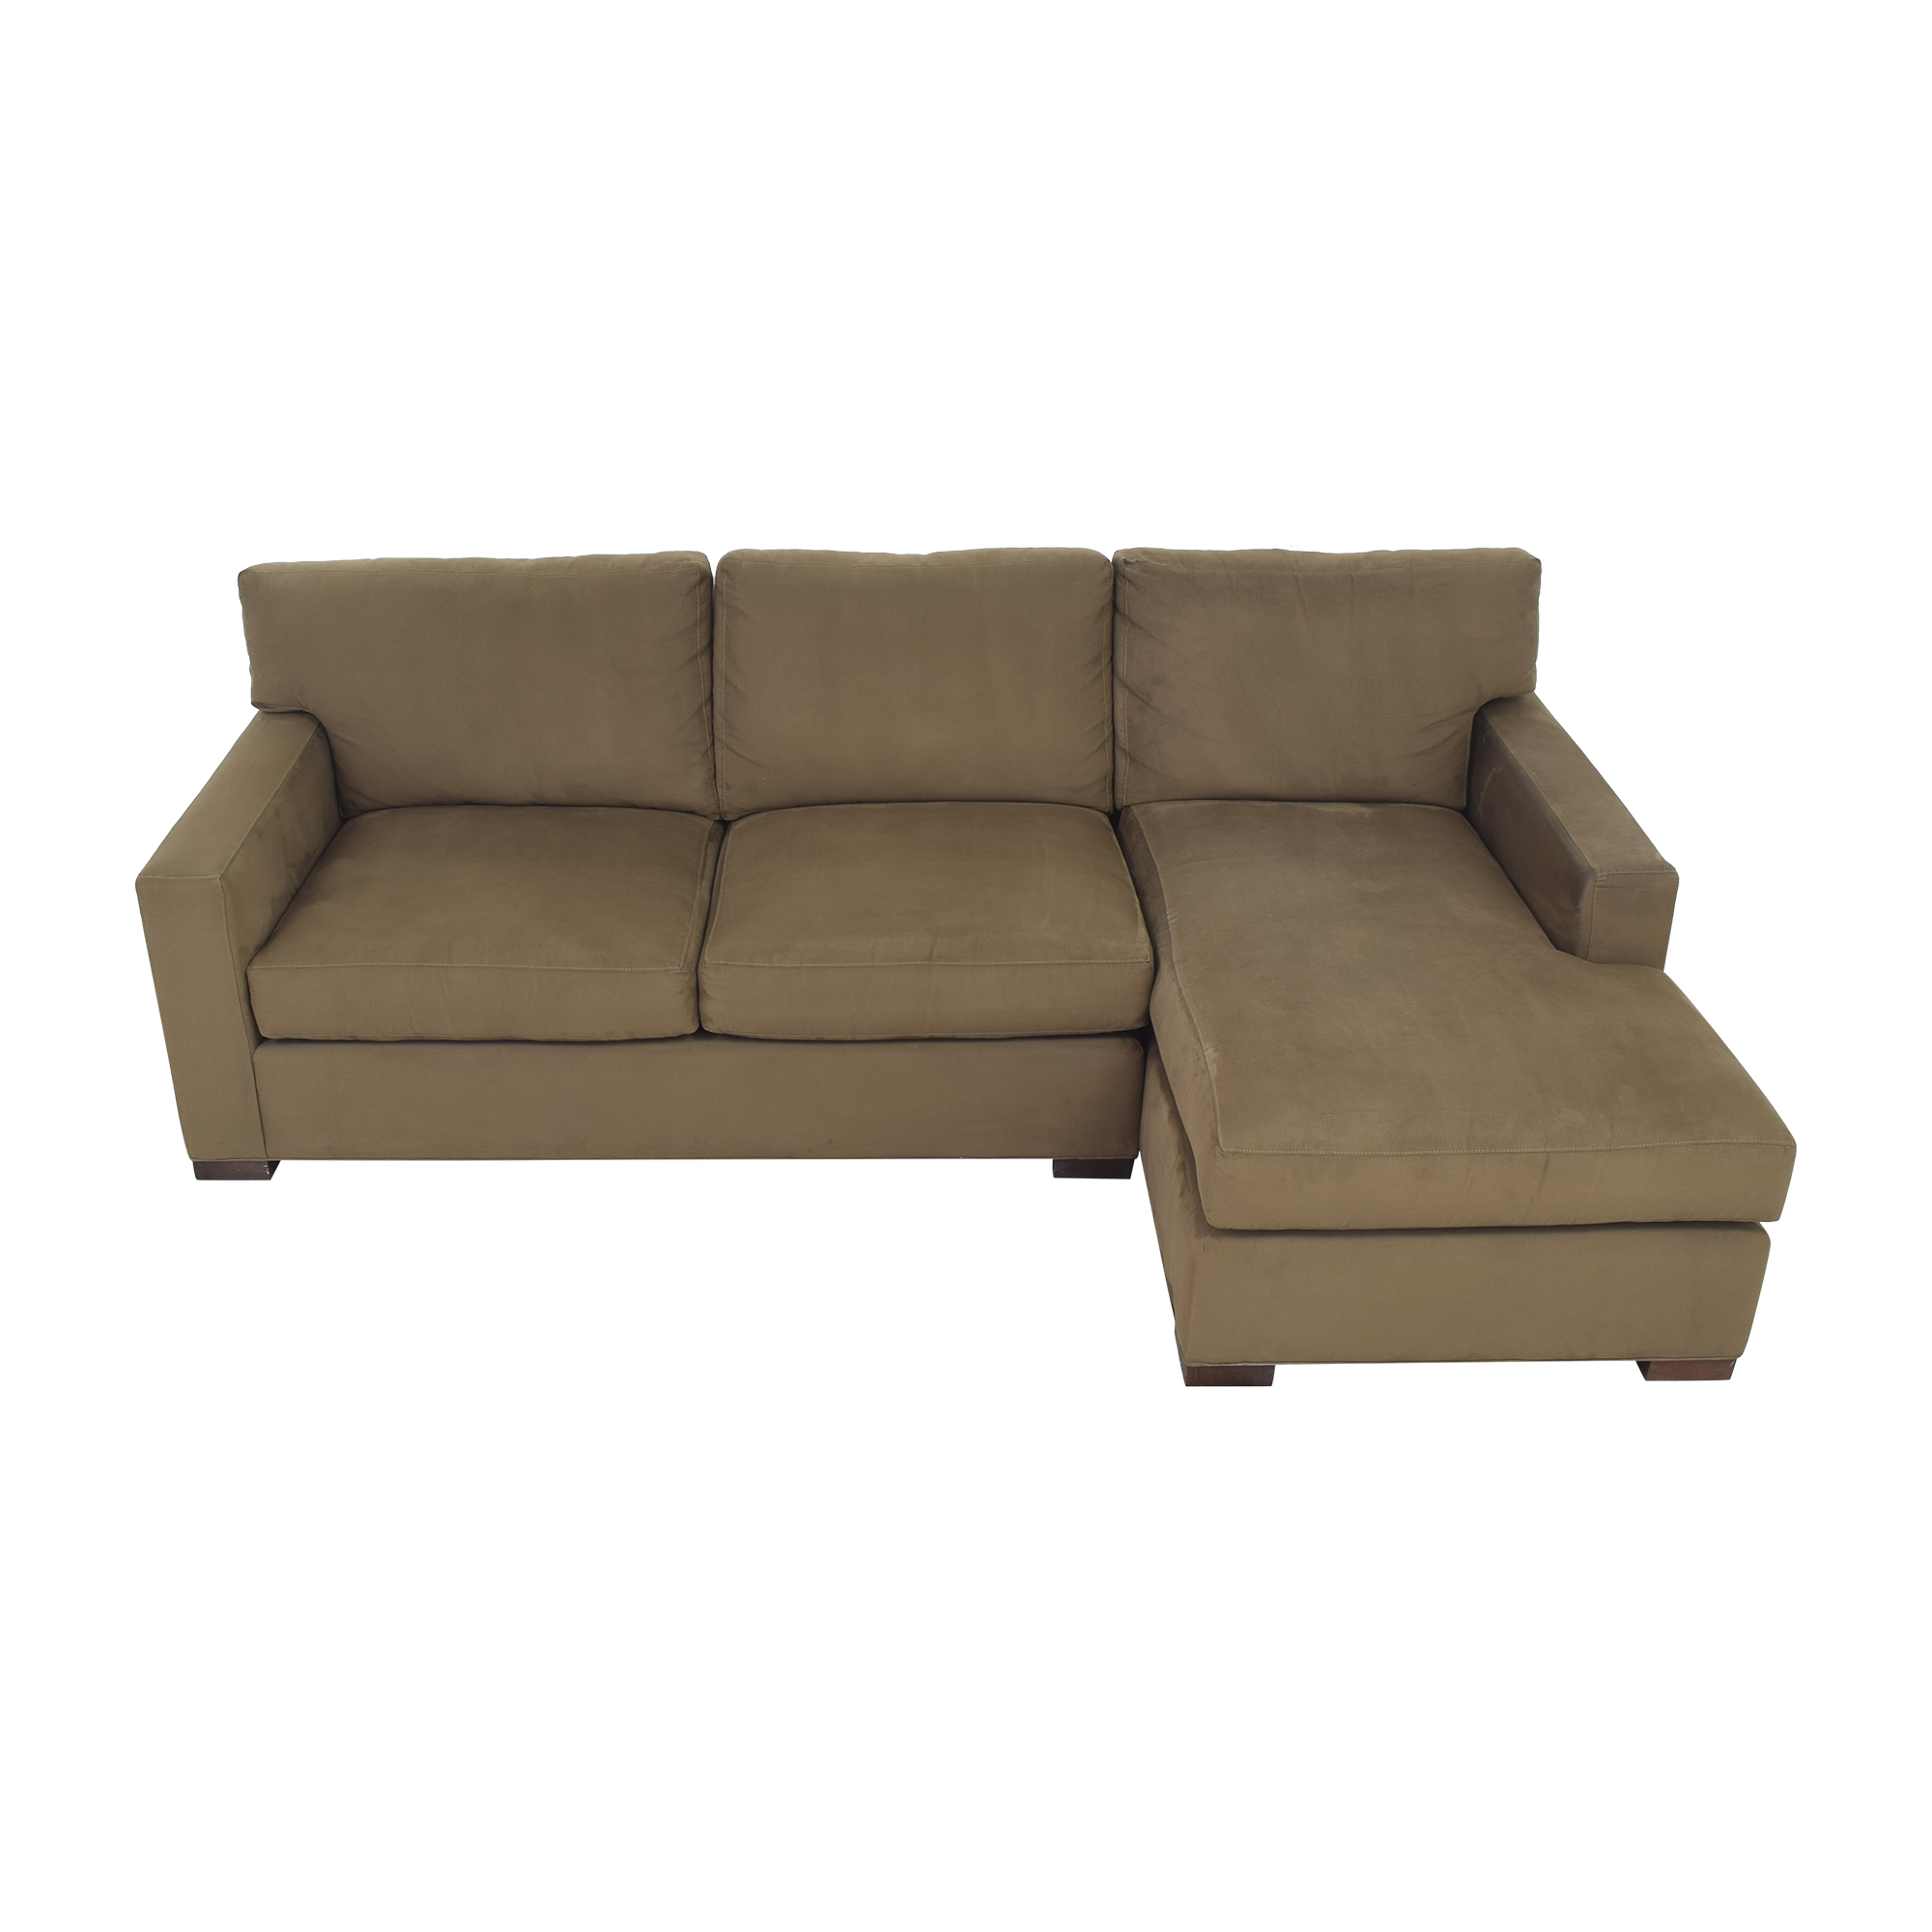 Crate & Barrel Crate & Barrel Axis II Two Piece Sectional Sofa for sale